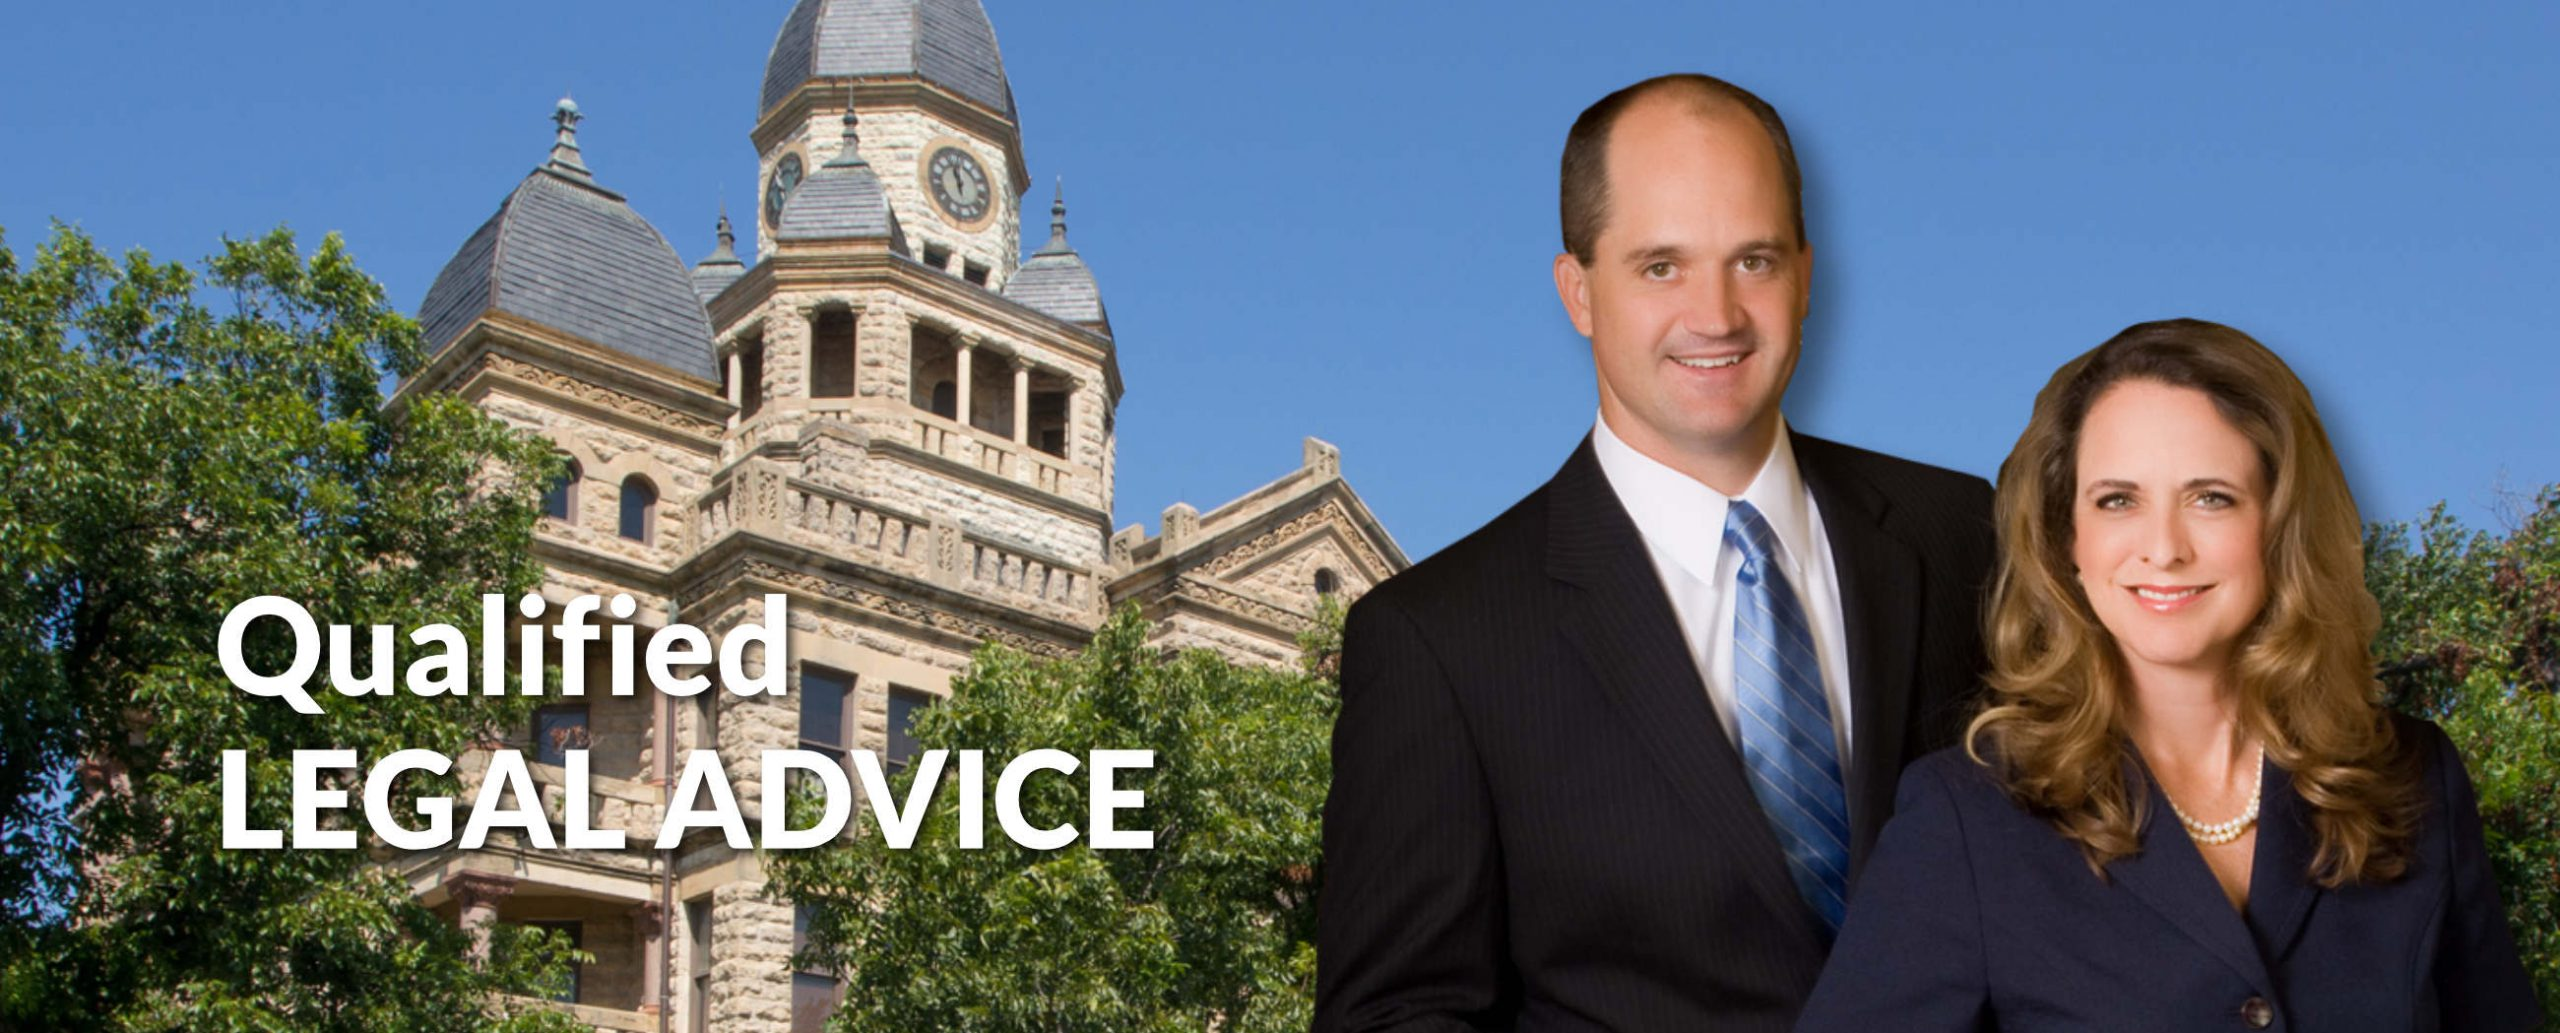 Qualified Legal Advice